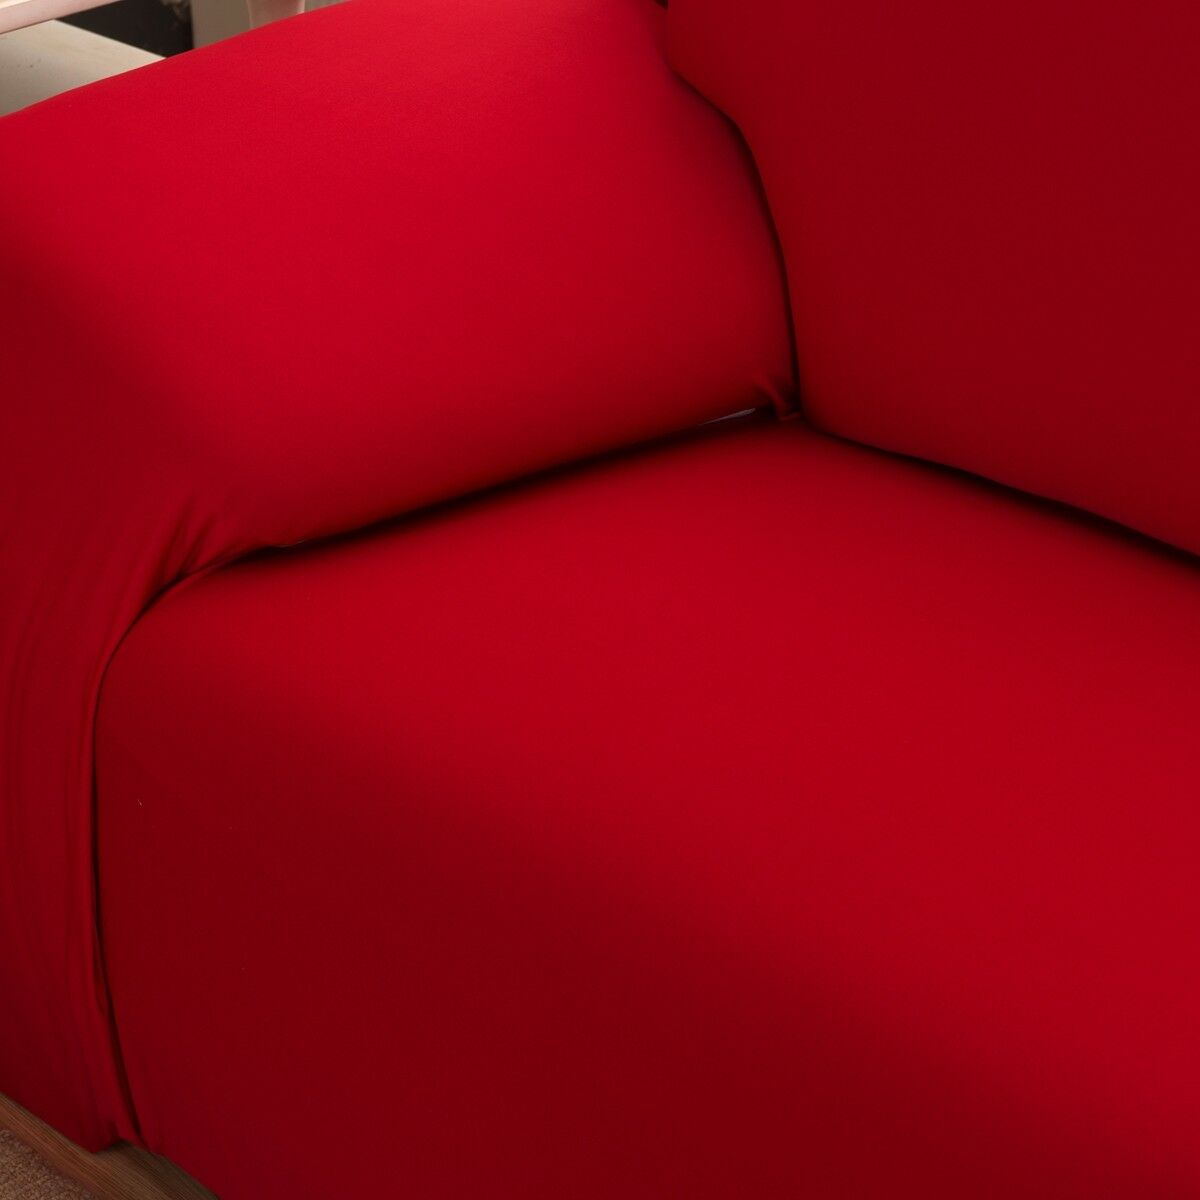 EASY-Stretch-Couch-Sofa-Lounge-Covers-Recliner-1-2-3-Seater-Dining-Chair-Cover thumbnail 87